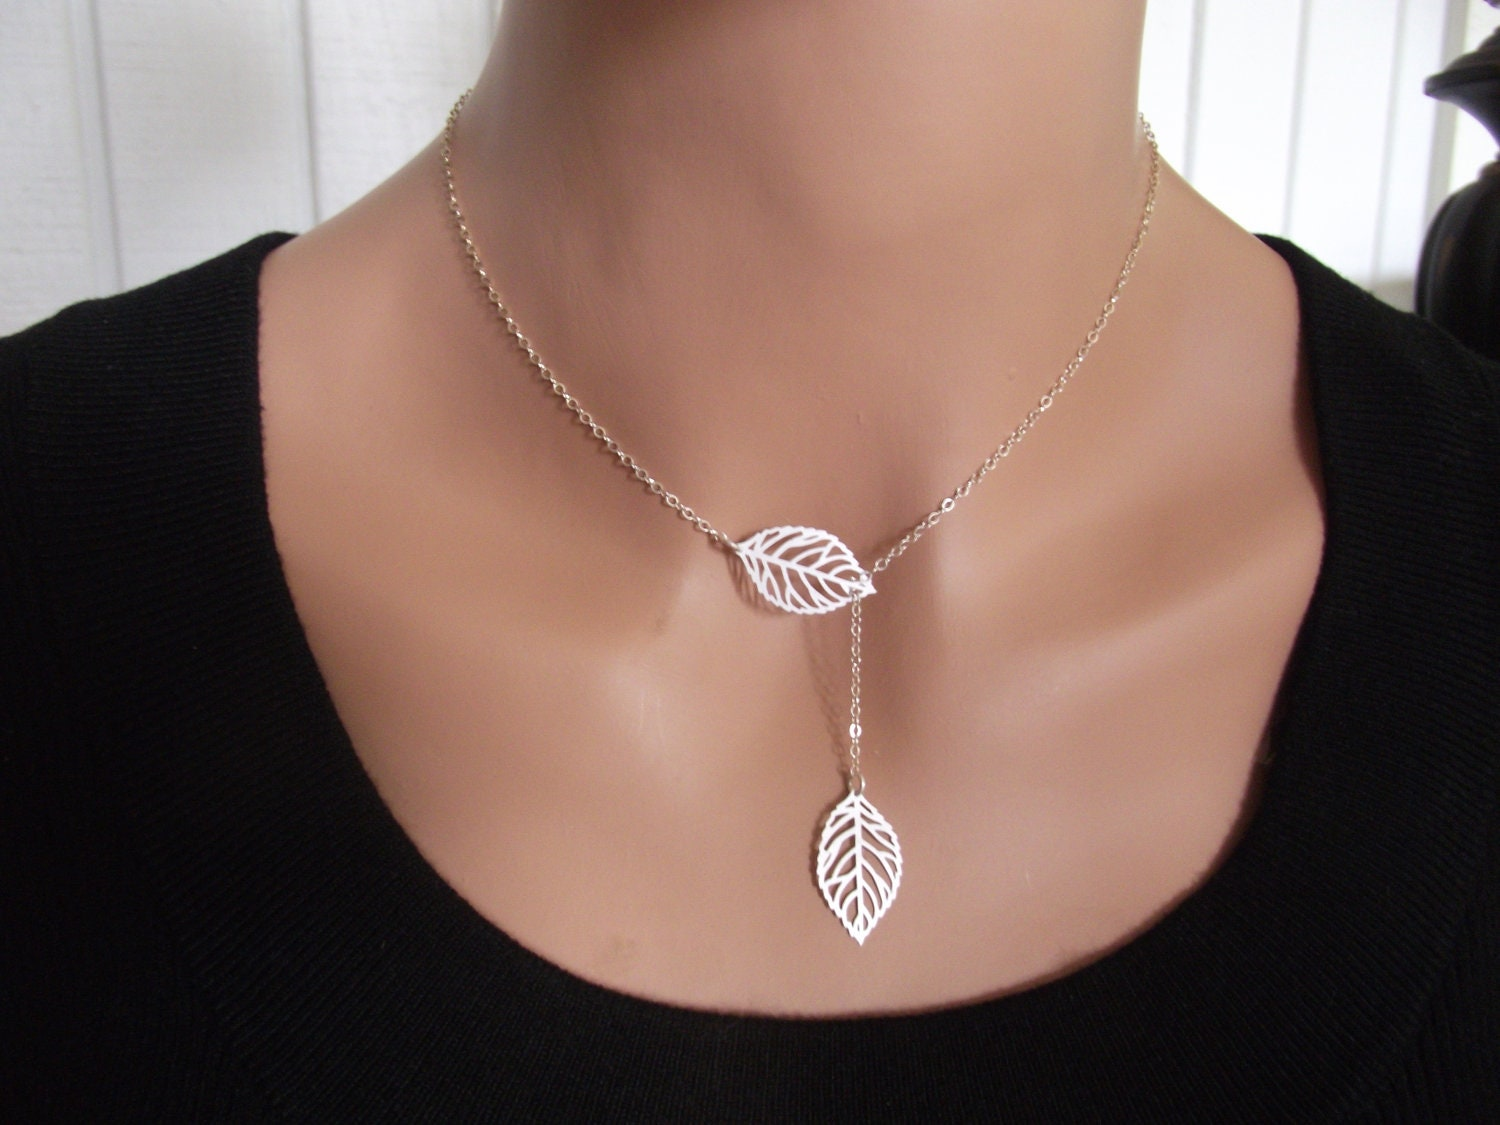 Silver leaf necklace sterling silver necklace leaf jewelry zoom mozeypictures